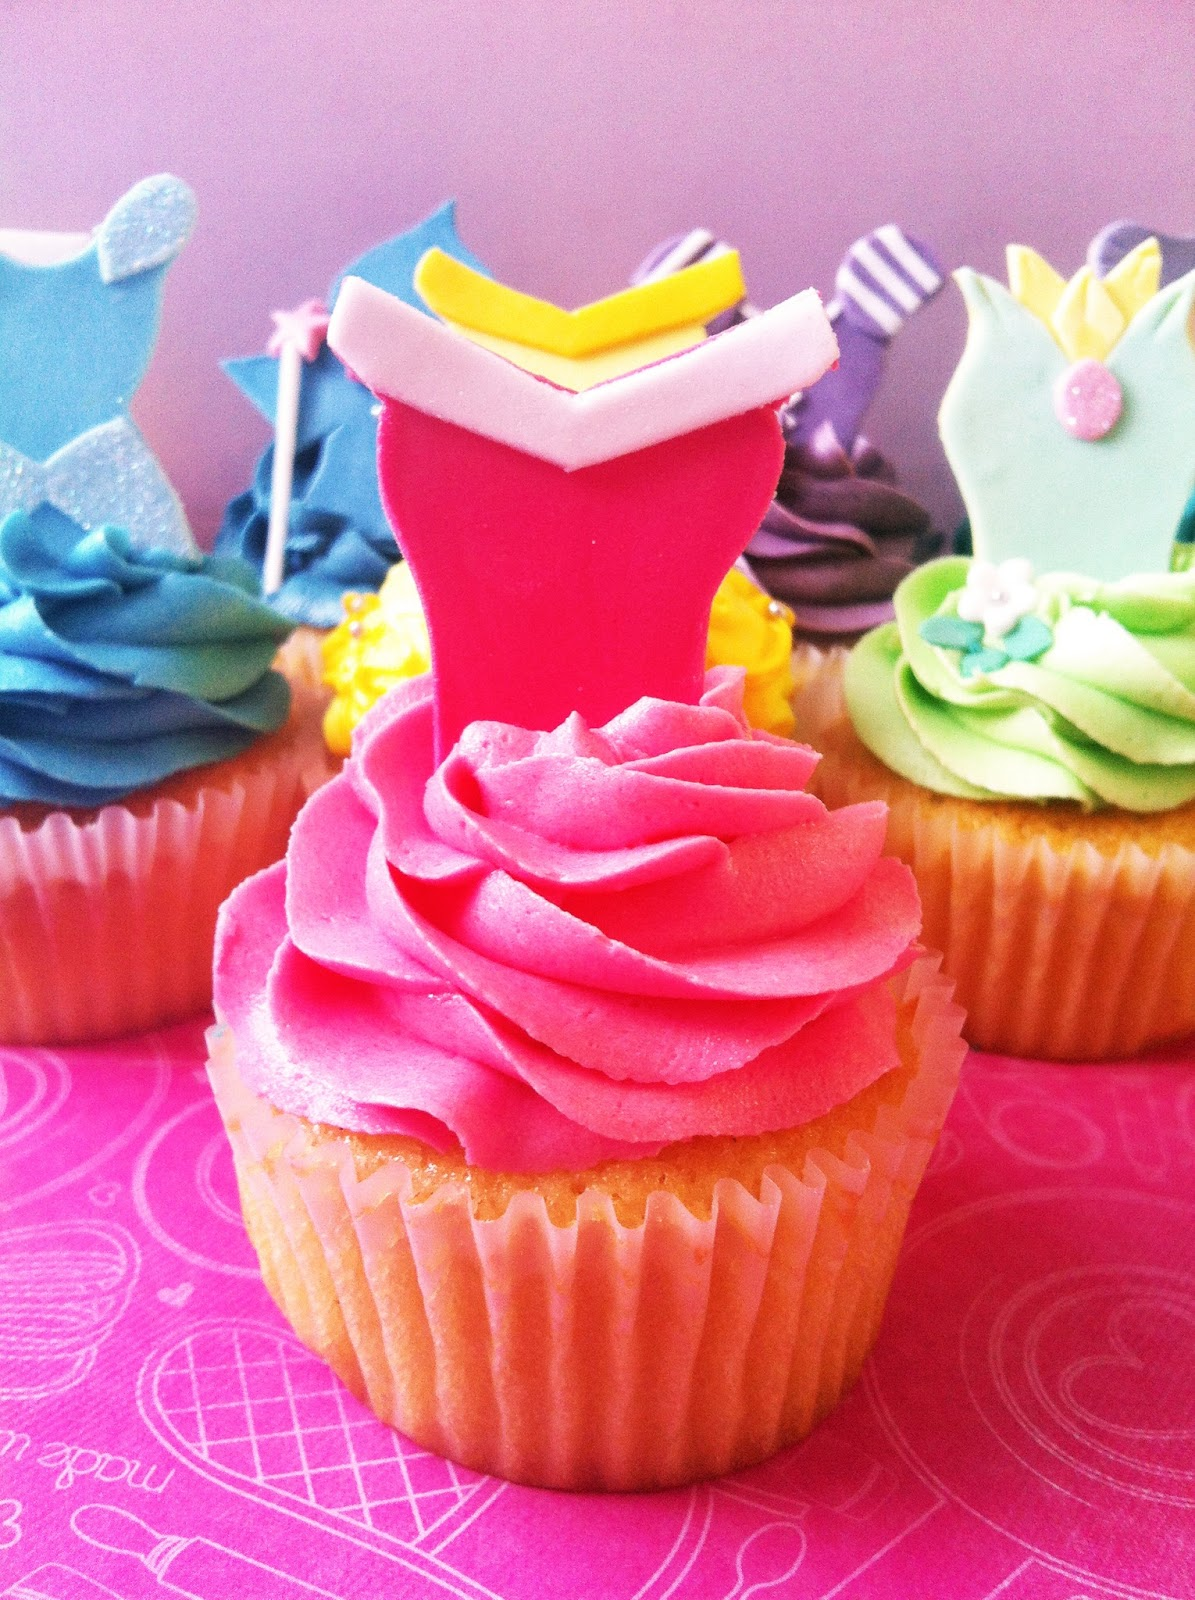 Princess Cupcake Images : top the cupcake: Disney Princess cupcake tutorial #1 ...